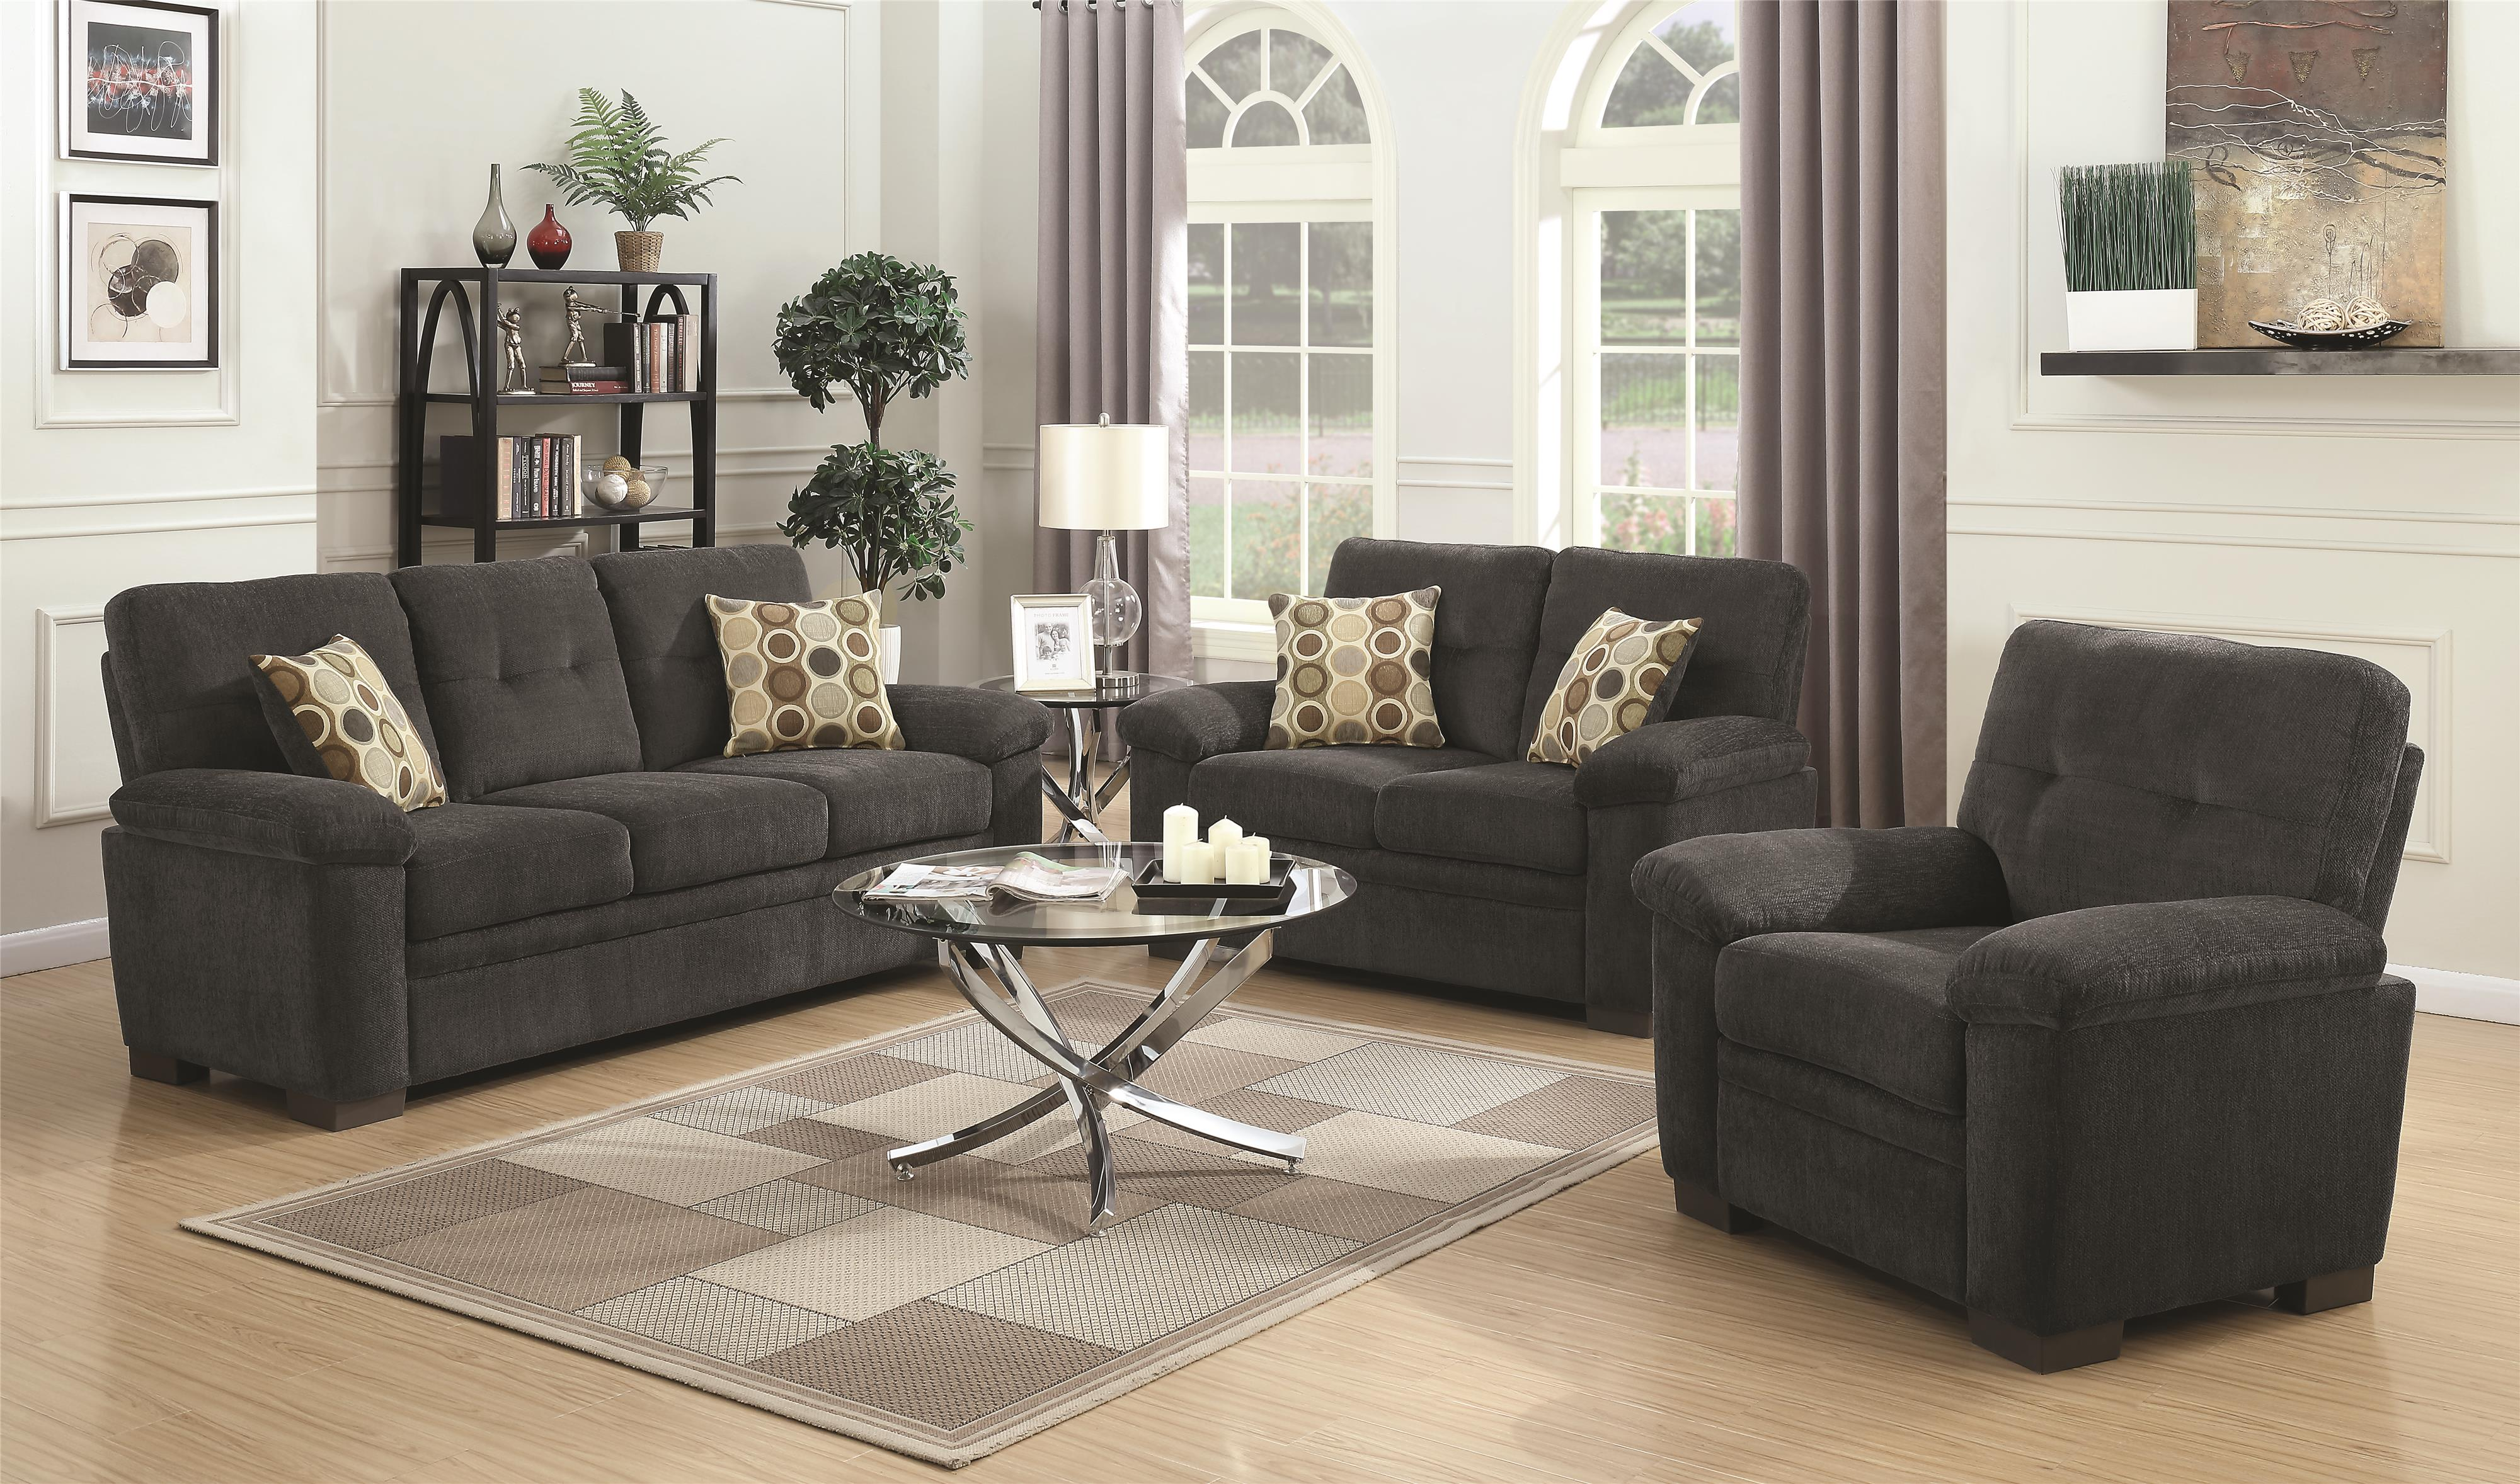 Fairbairn Stationary Living Room Group by Coaster at Northeast Factory Direct